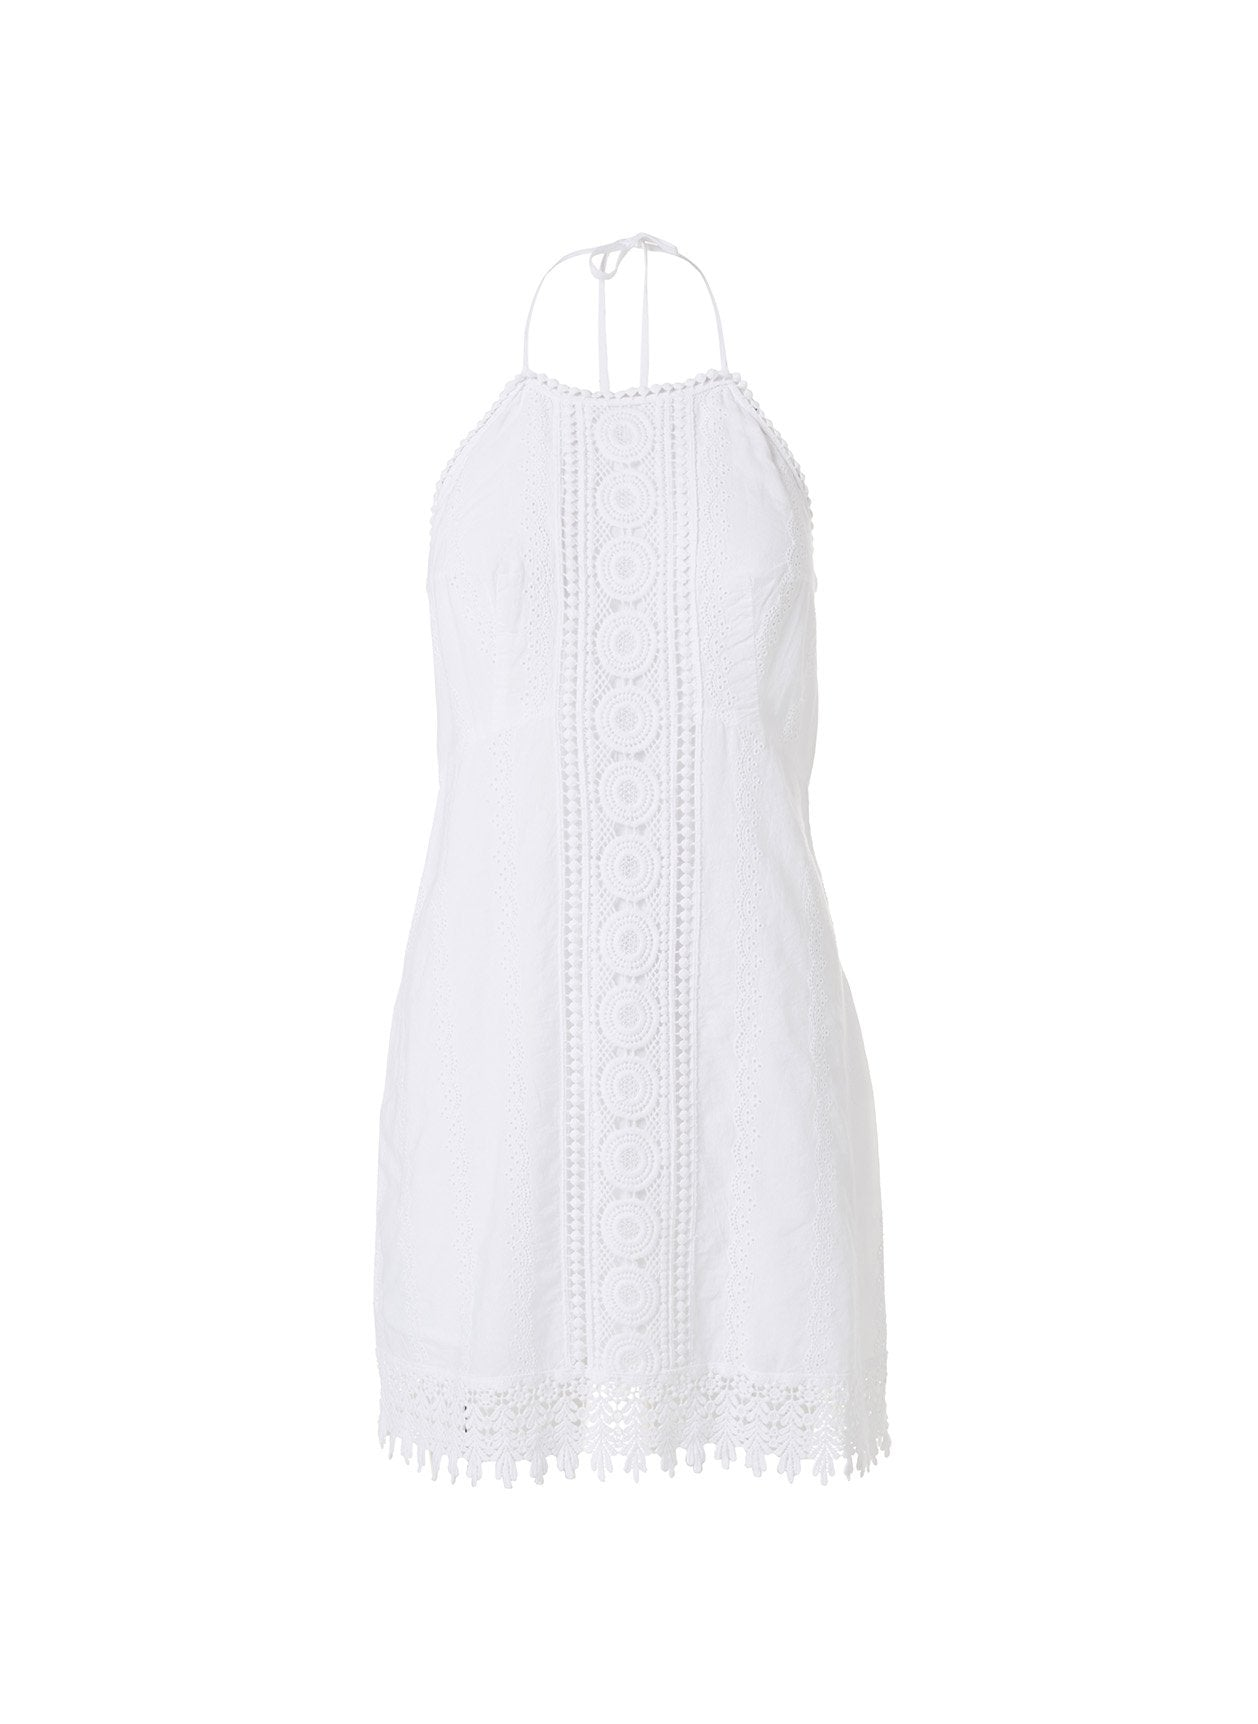 Poppy White Mini Dress